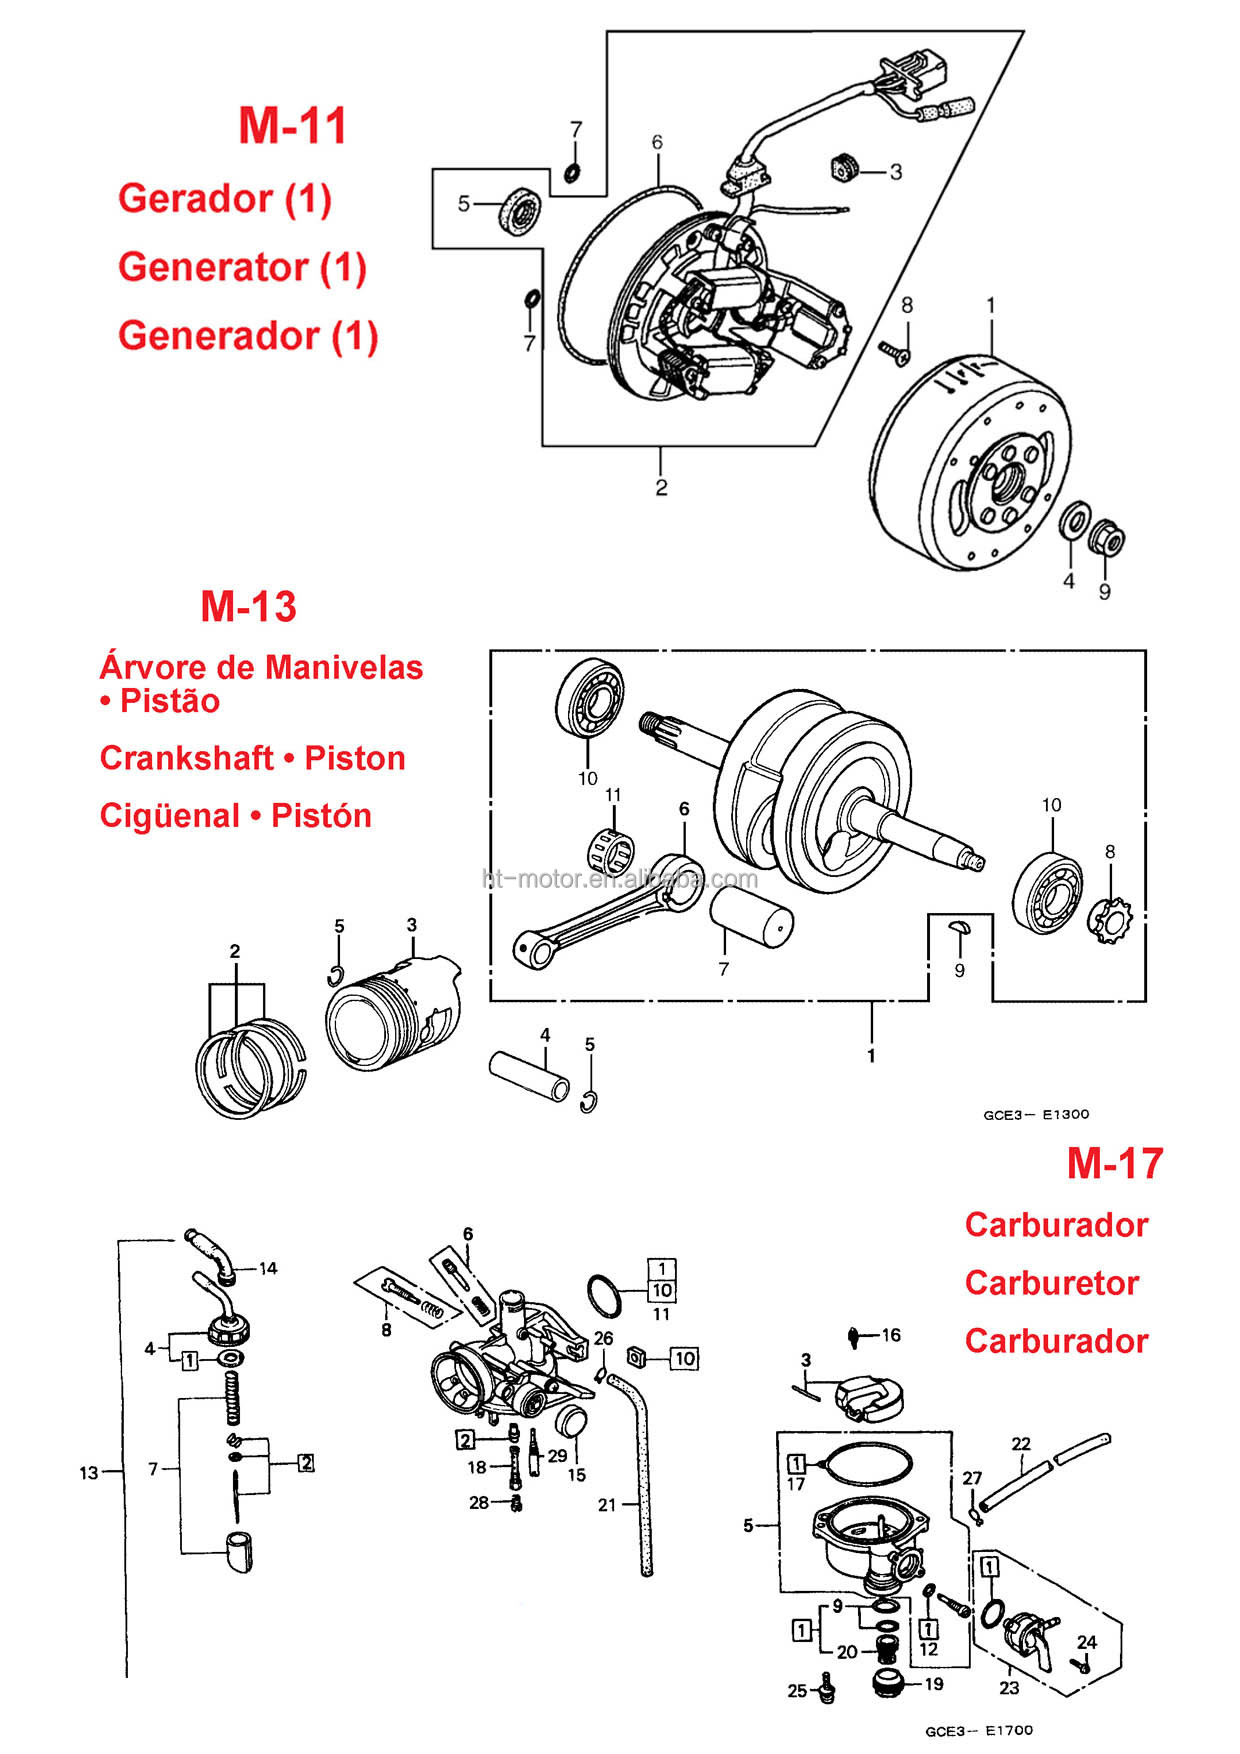 Bajaj Boxer Ct 100 Wiring Diagram Wire Center Ct100 Images Gallery